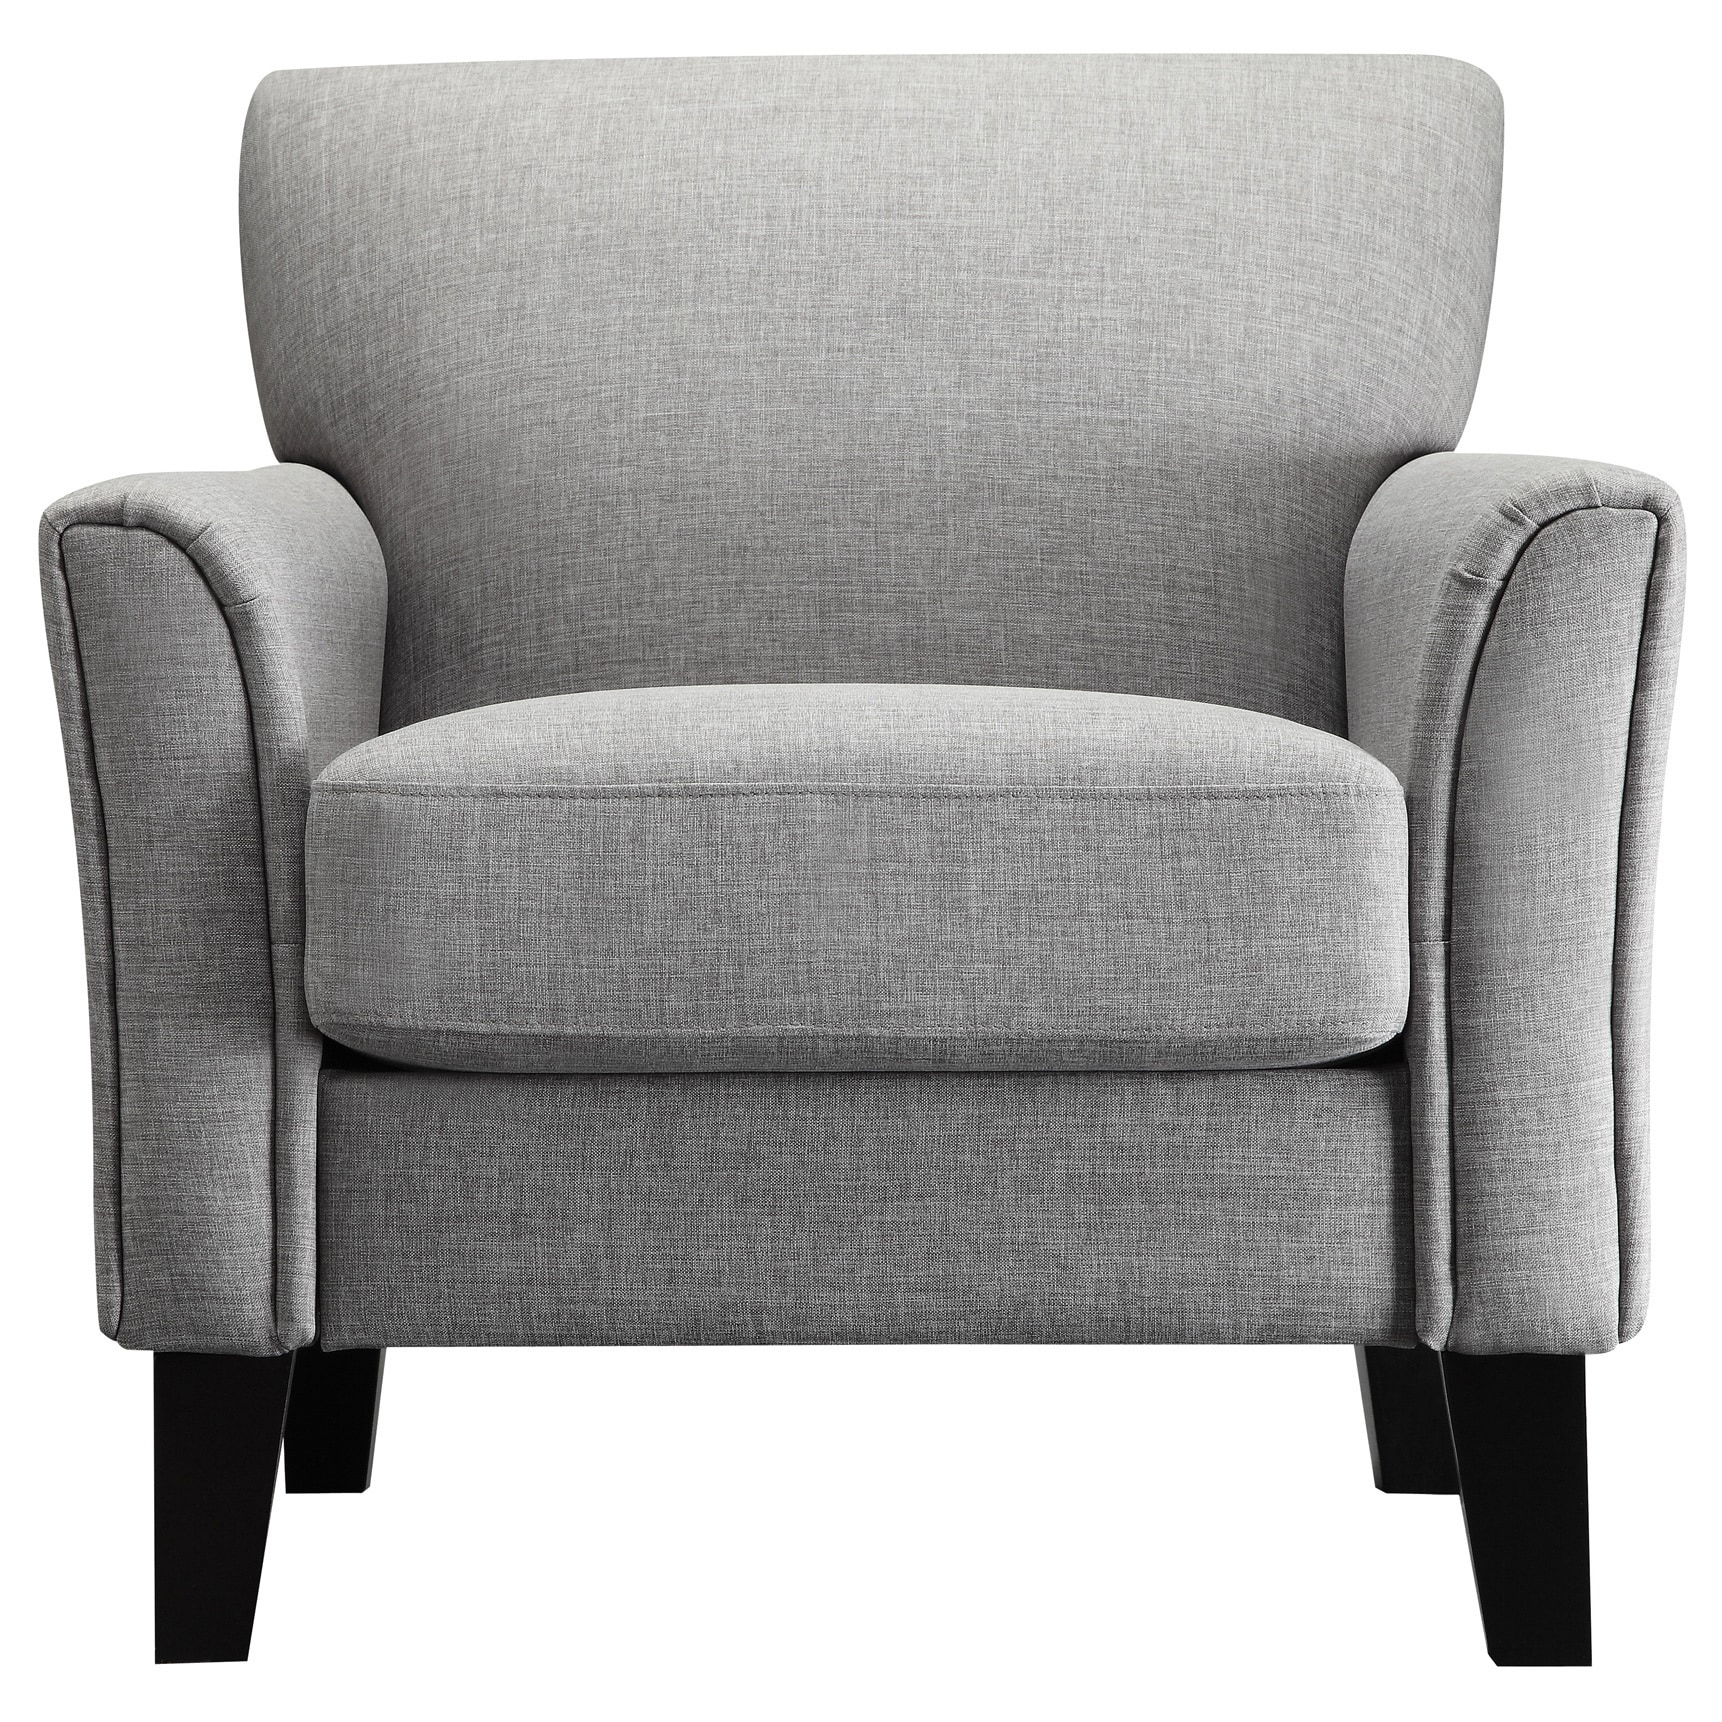 Shop Uptown Modern Accent Chair And Ottoman By INSPIRE Q Classic   On Sale    Free Shipping Today   Overstock.com   8767750